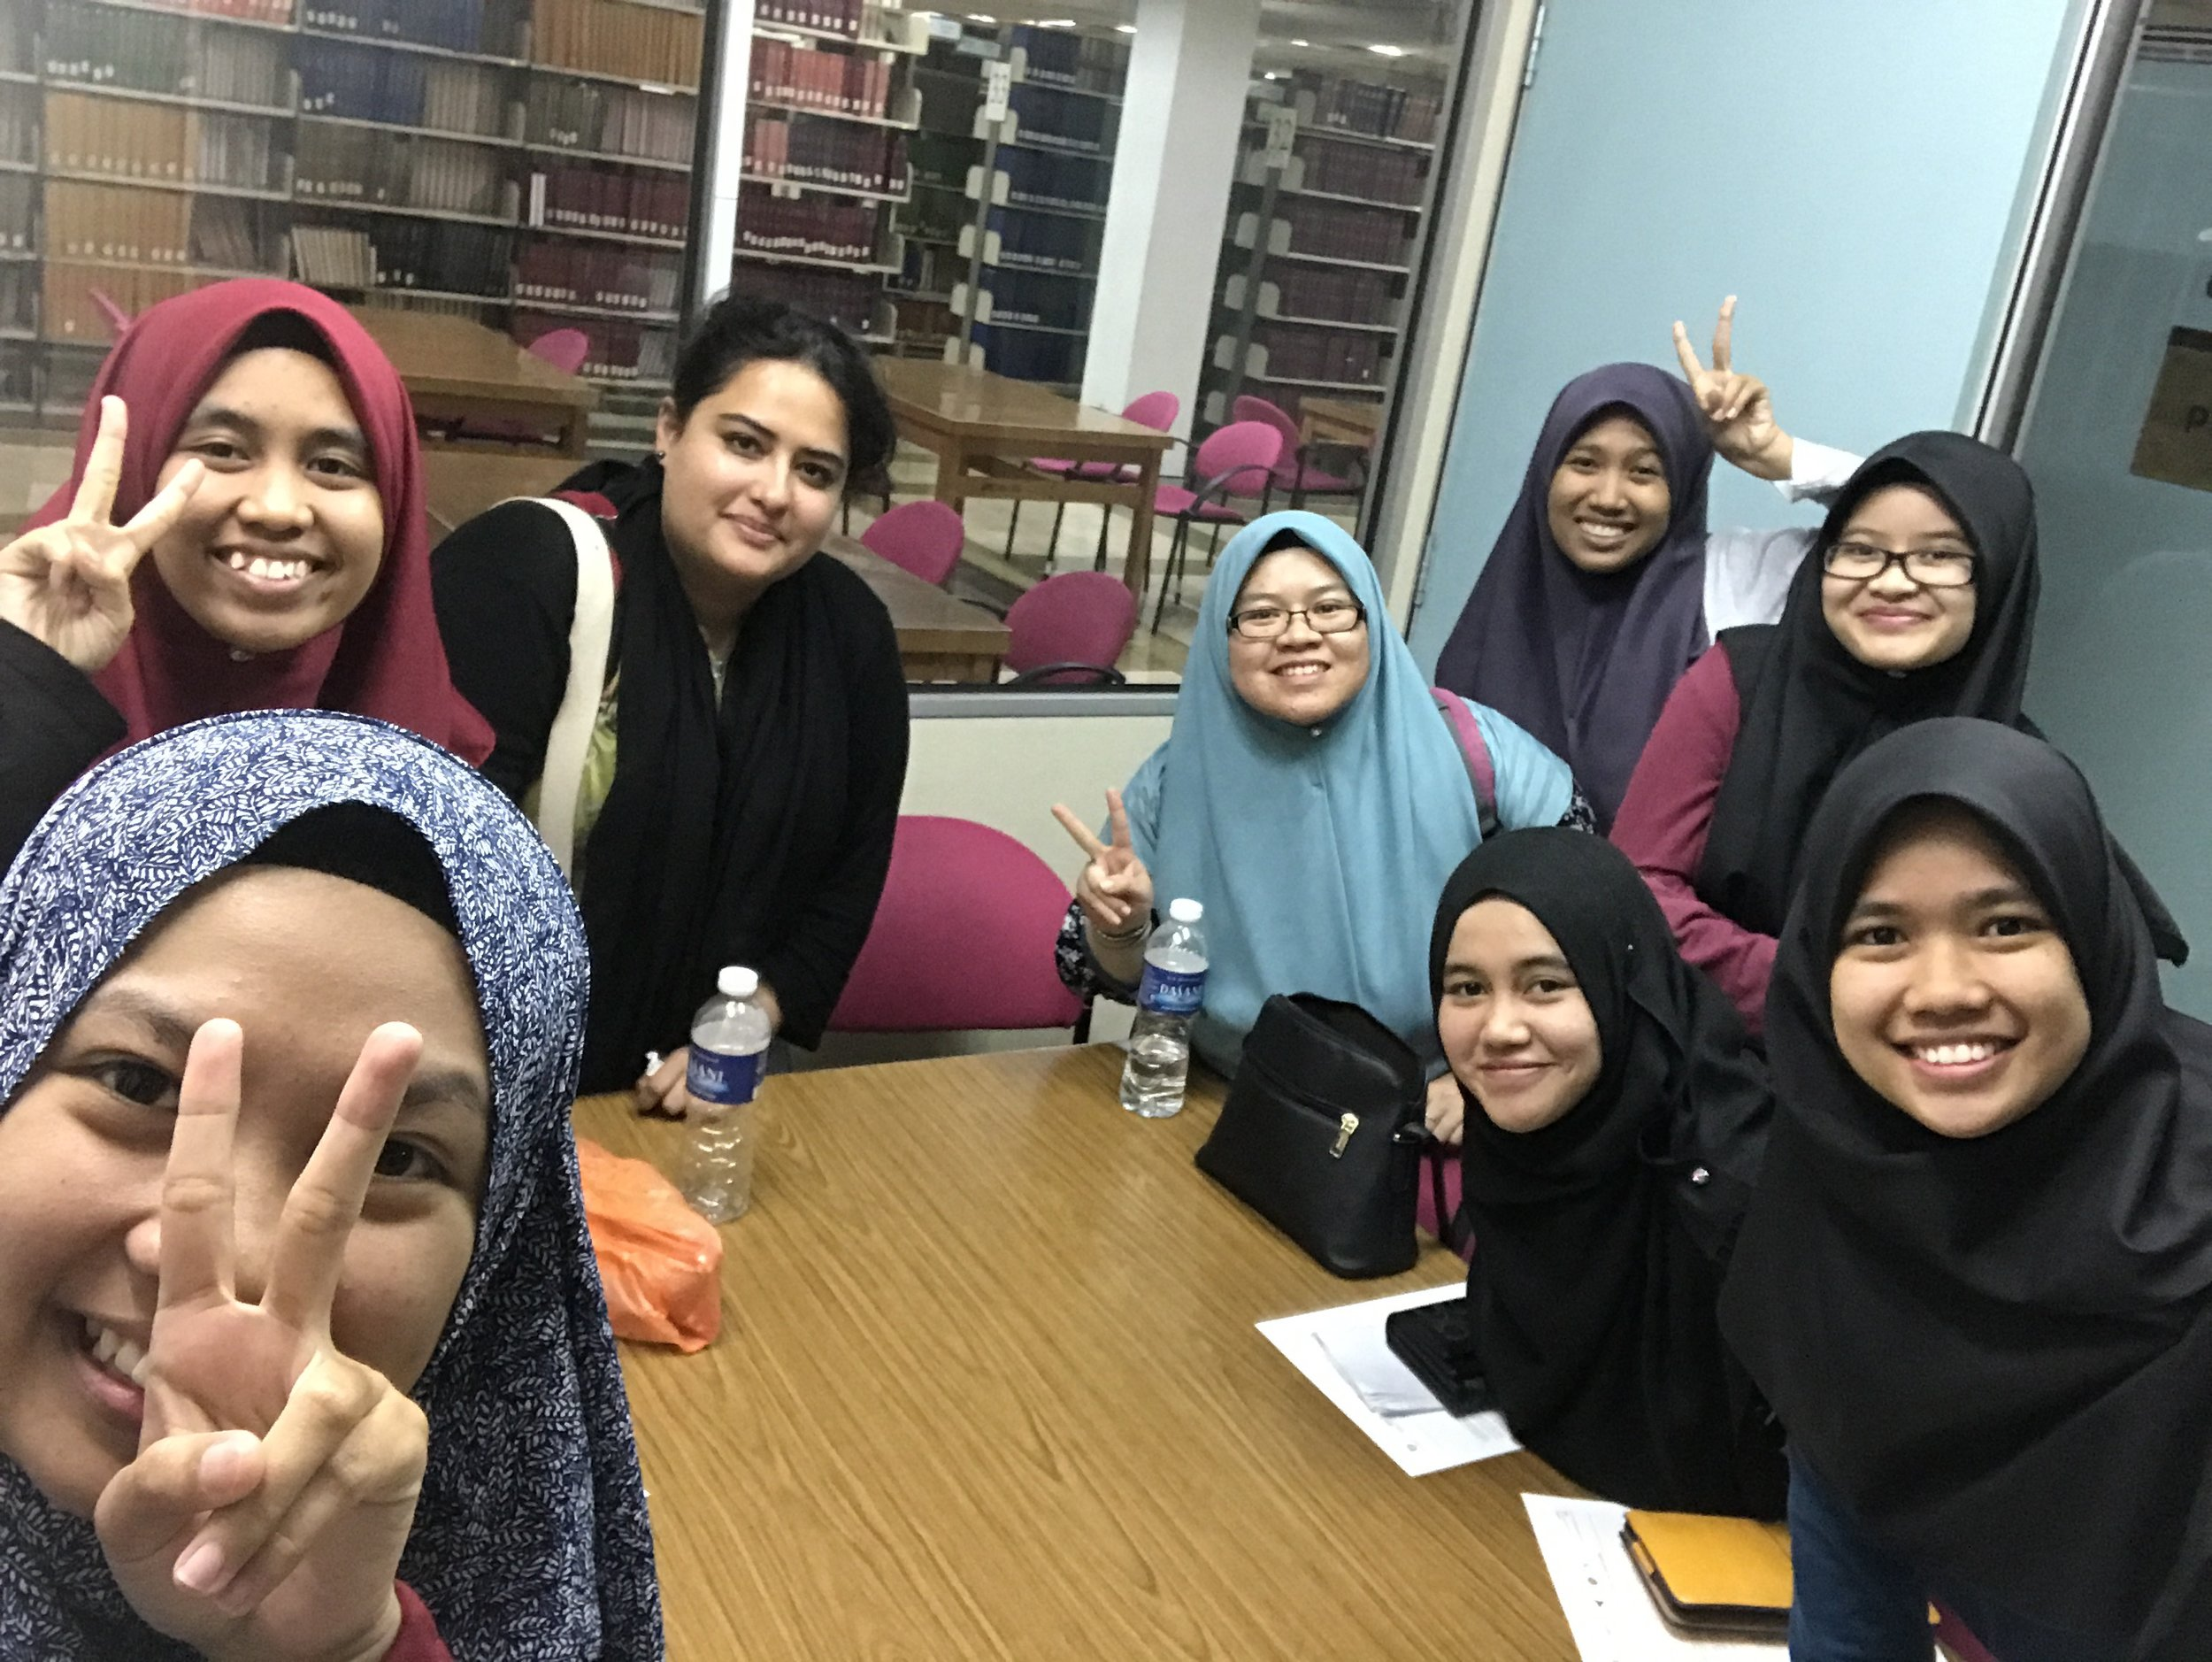 Conducting focus group with Malaysian engineering students in the library at Universiti Teknologi Malaysia (UTM) in Johor Bahru.